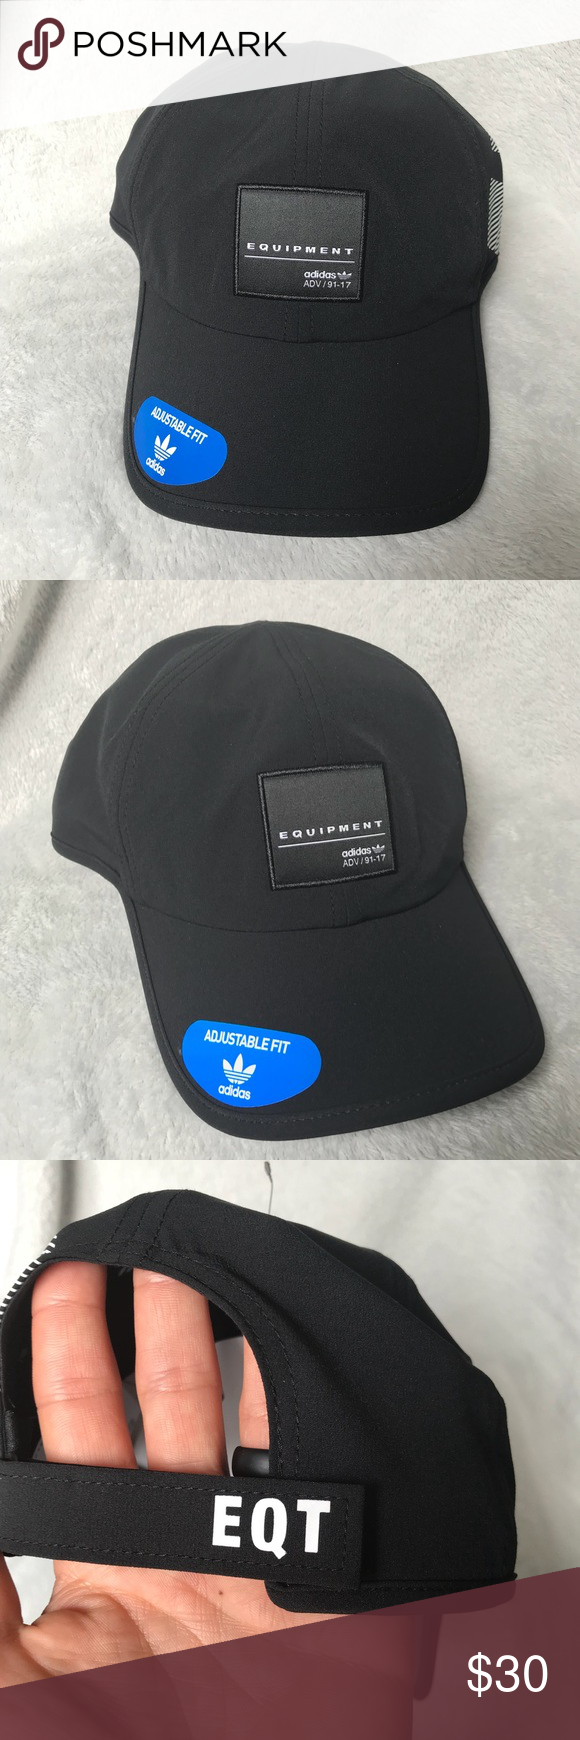 9fcf97fa Adidas EQT ADV dad hat Comfortable drifit material, adjust Velcro strap in  the back.